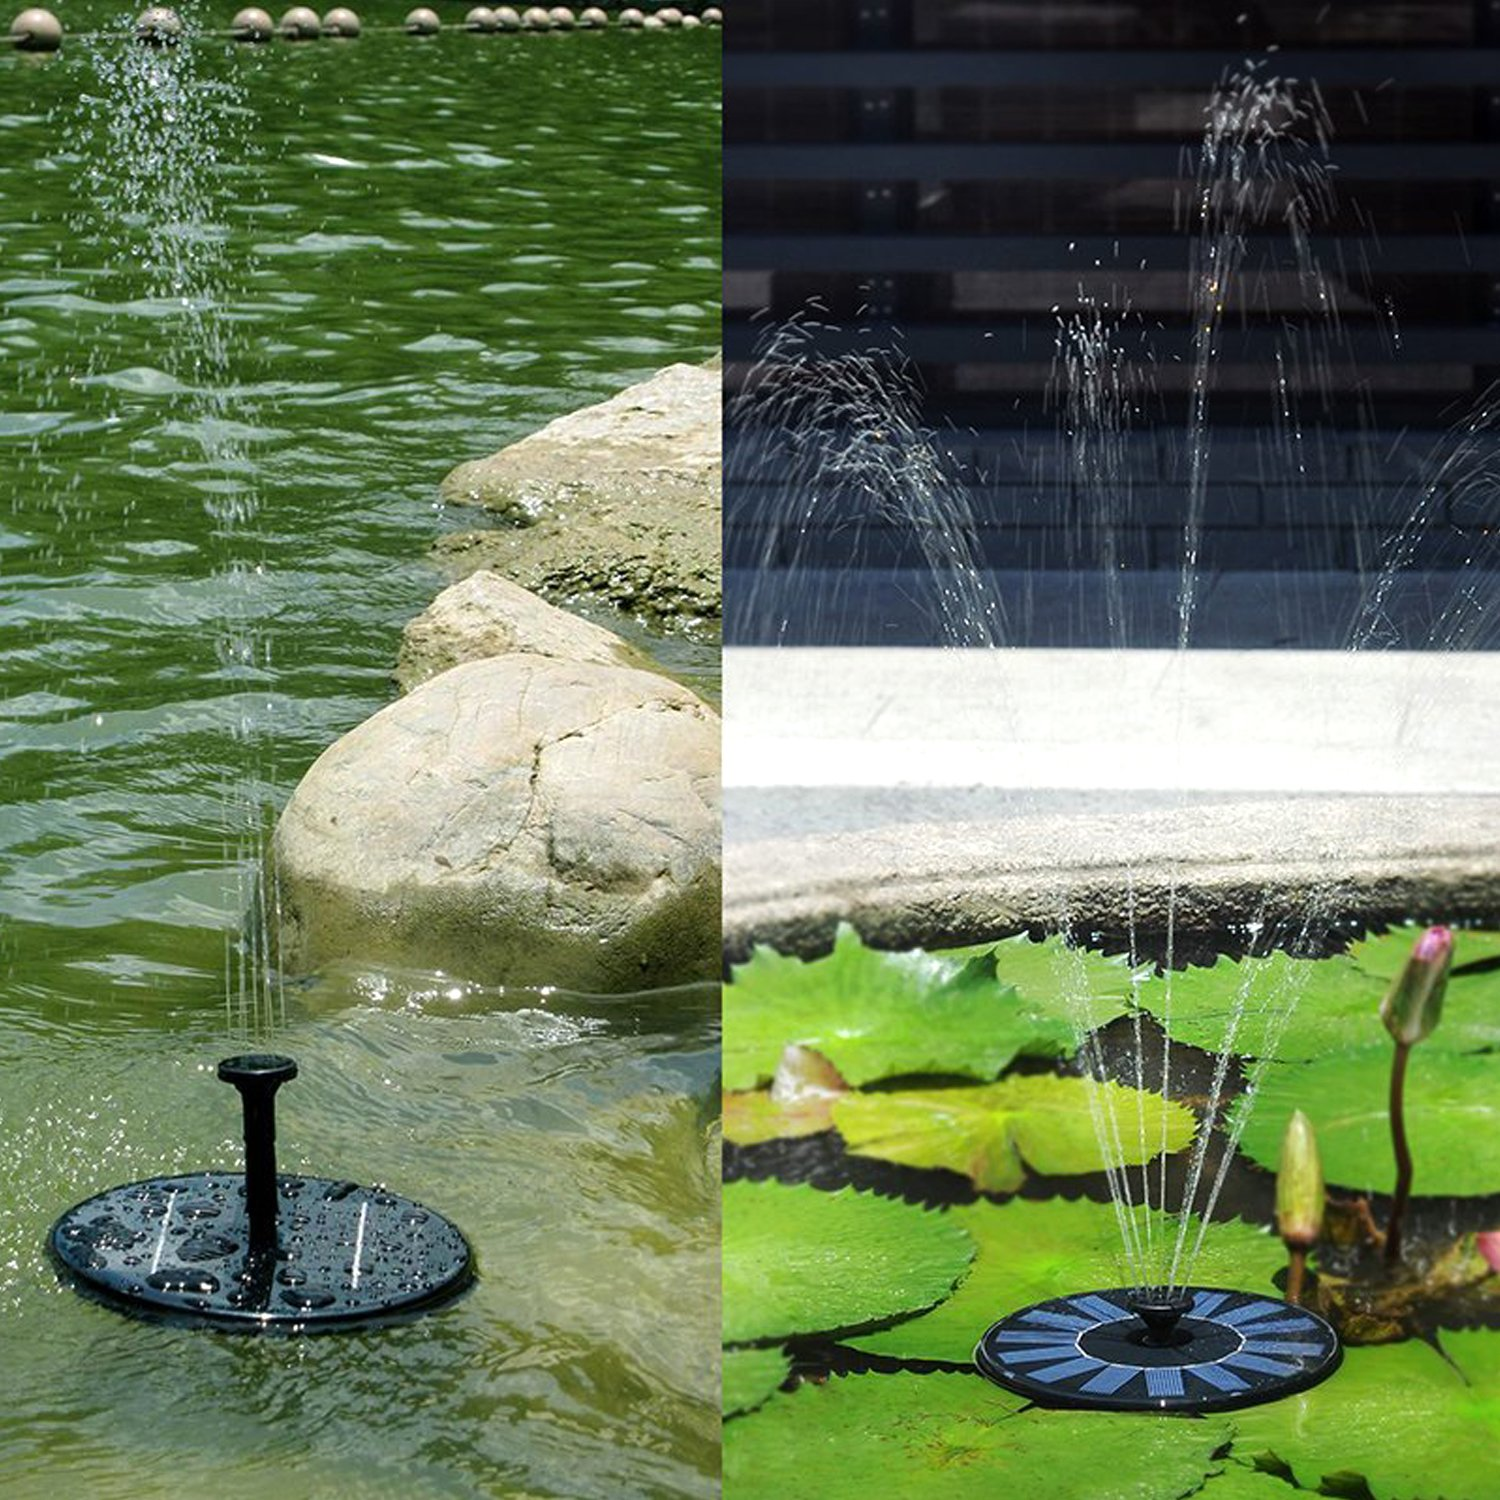 VC-Time Solar Water Pump, 1.4W Solar Bird Bath Fountain Pump, Free Standing Solar Panel Kit Water Pump, Outdoor Watering Submersible Pump For Bird Bath, Fish Tank Aquarium, Small Pond, Garden, Lawn